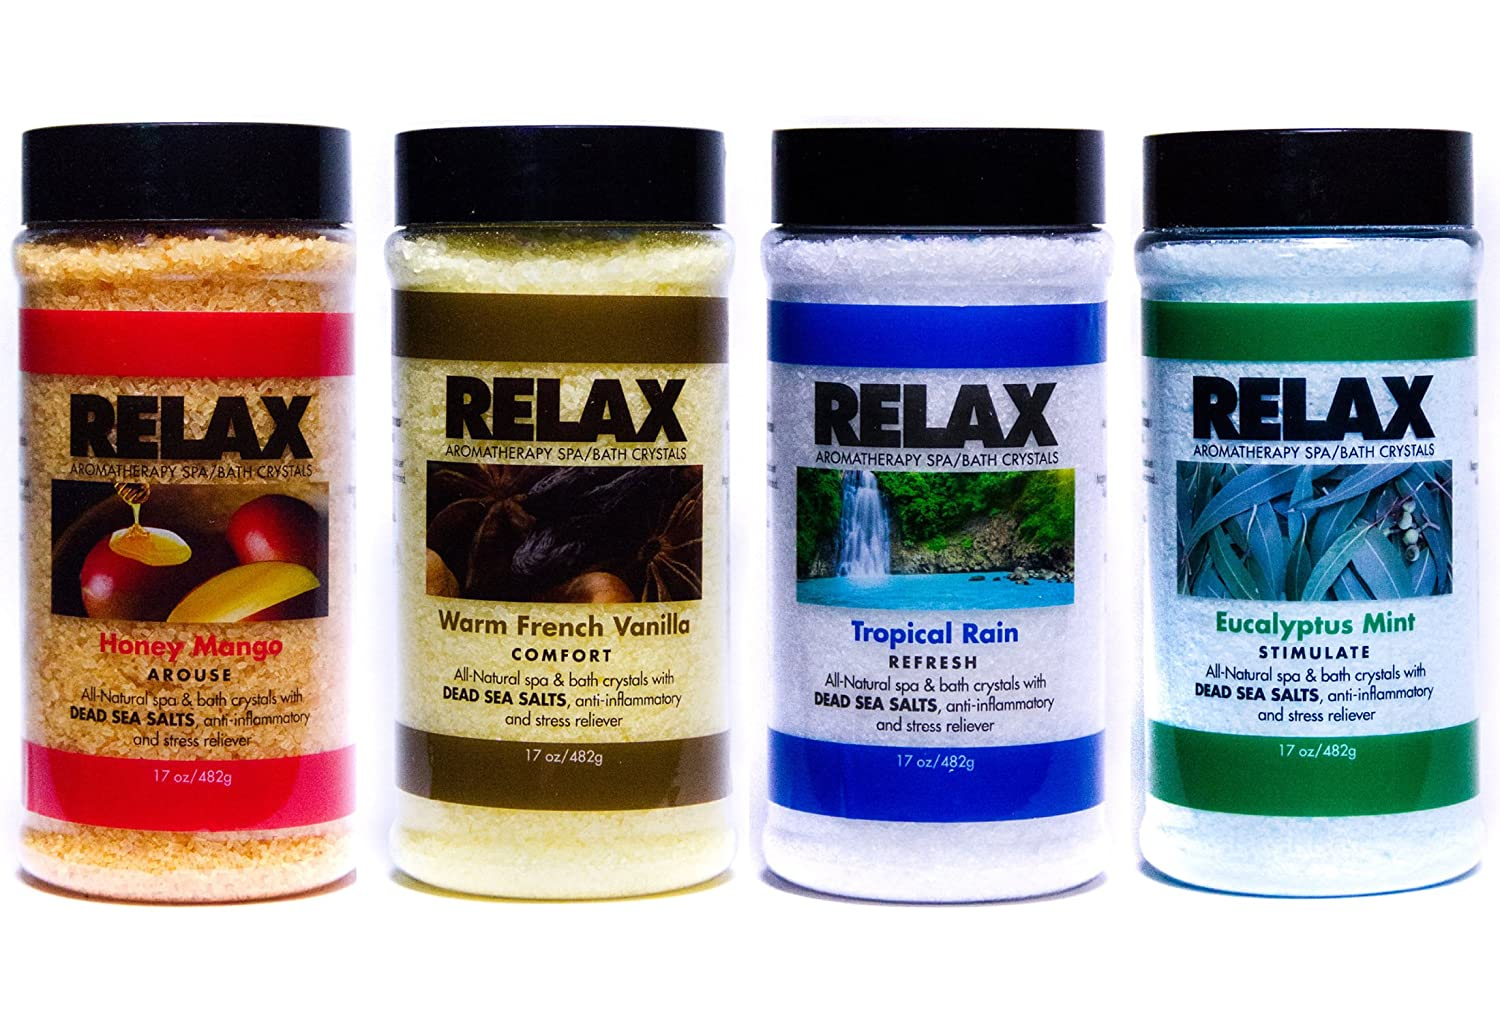 Original Relax Aromatherapy Best Bath Salts, Pack of 4, 17 Ounce Bottles, All Natural Epsom Mineral Salts, Safe for Hot Tubs, Spas, Baths, and Jacuzzi